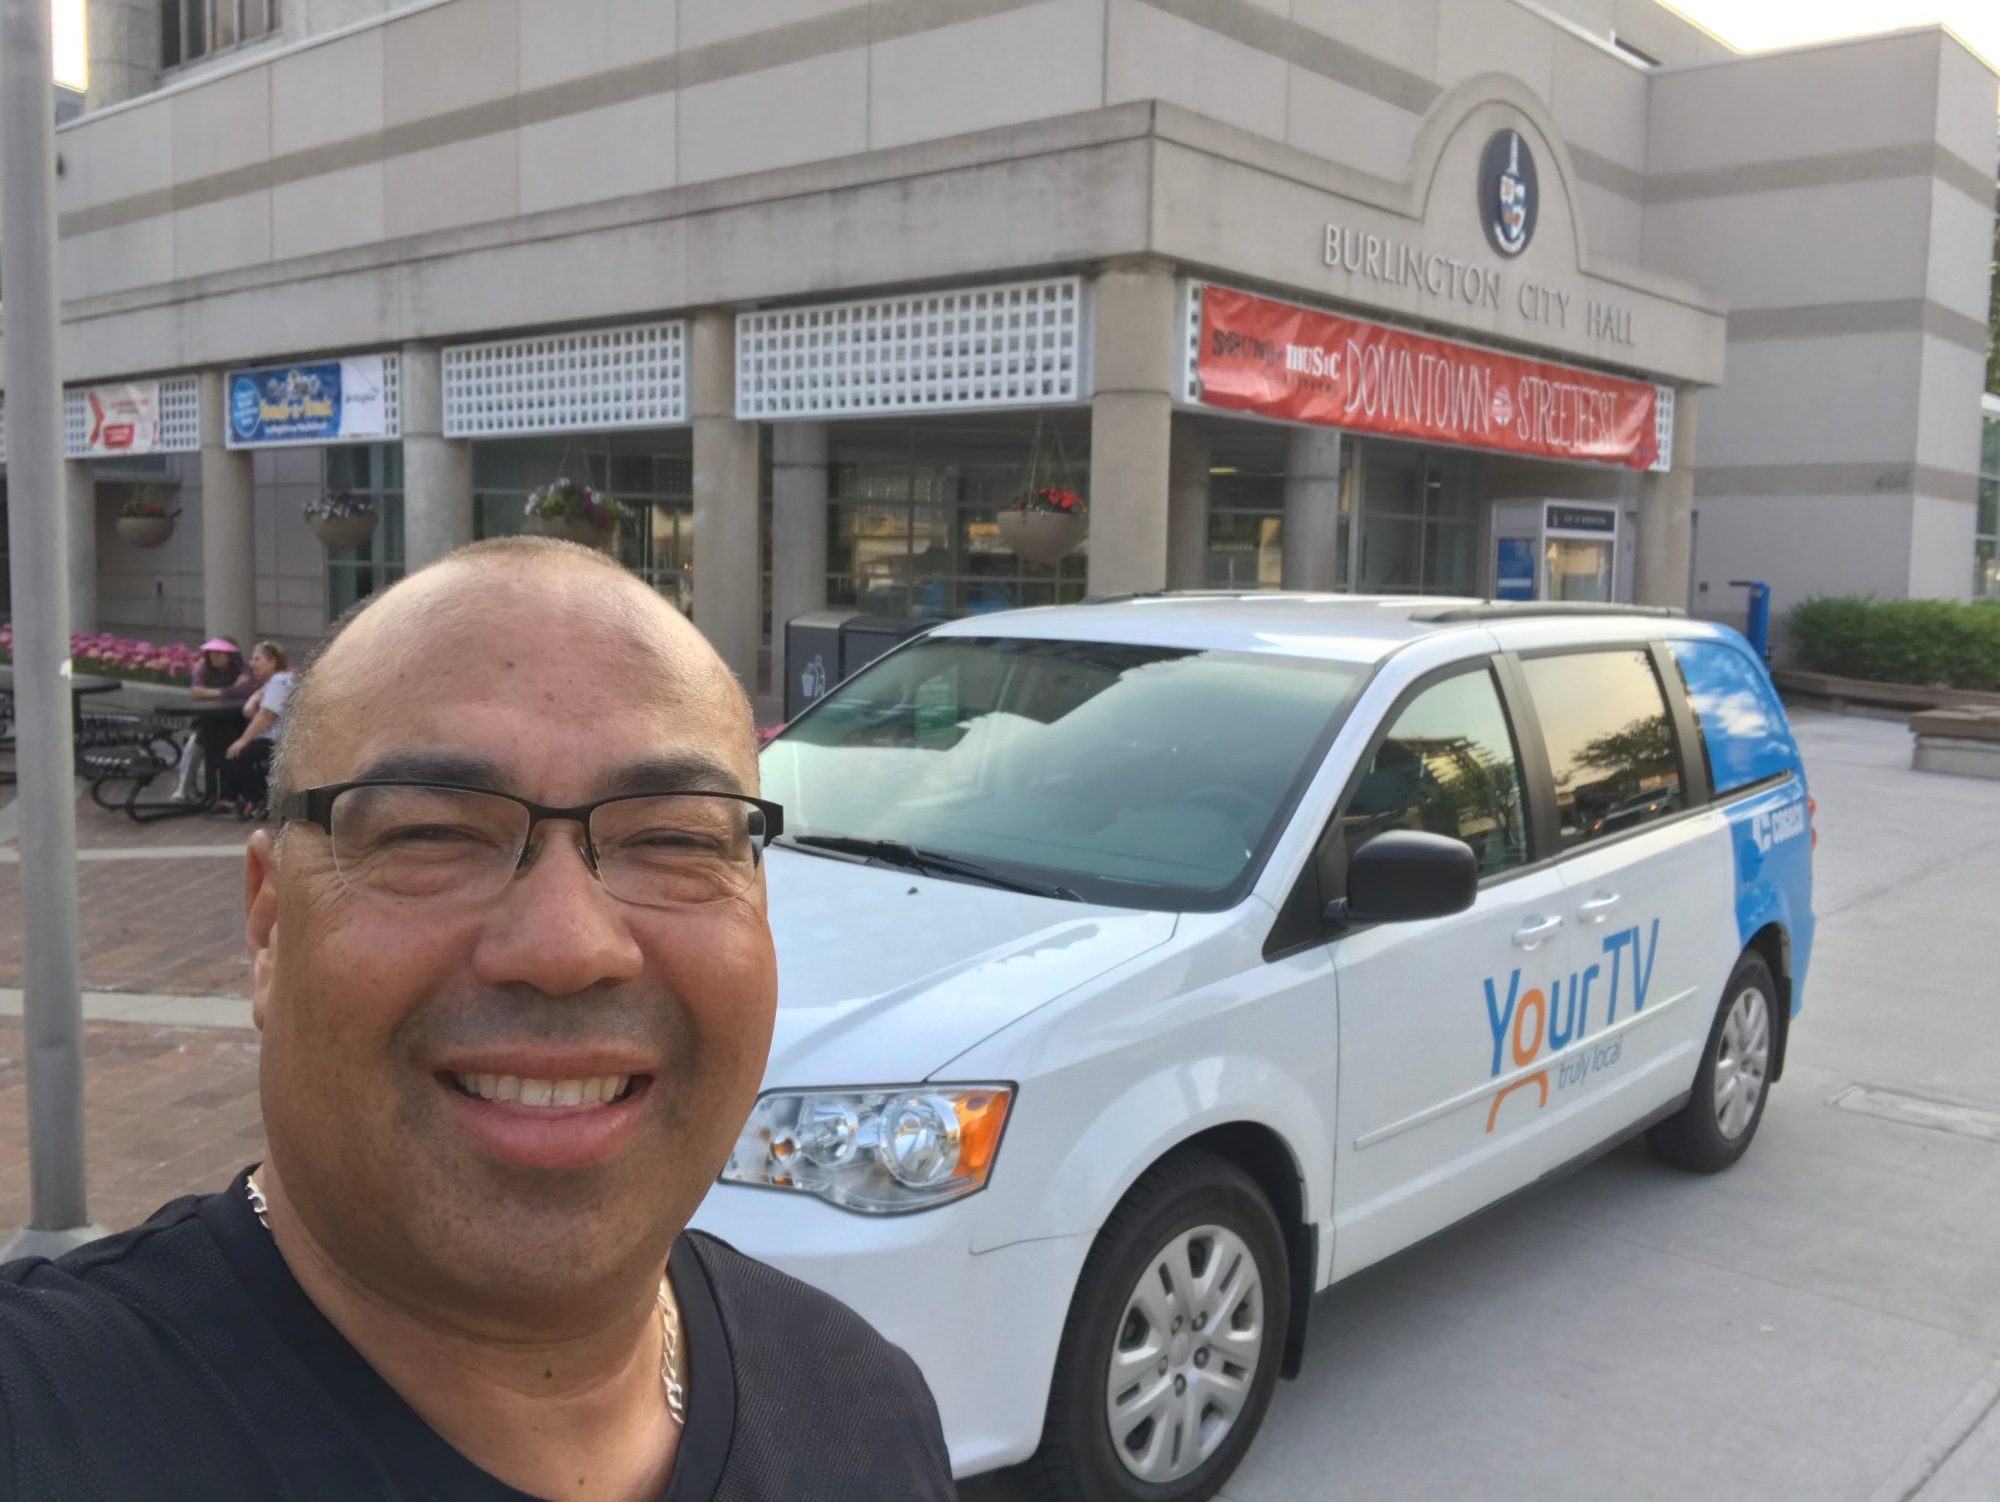 Bruce with the YourTv van